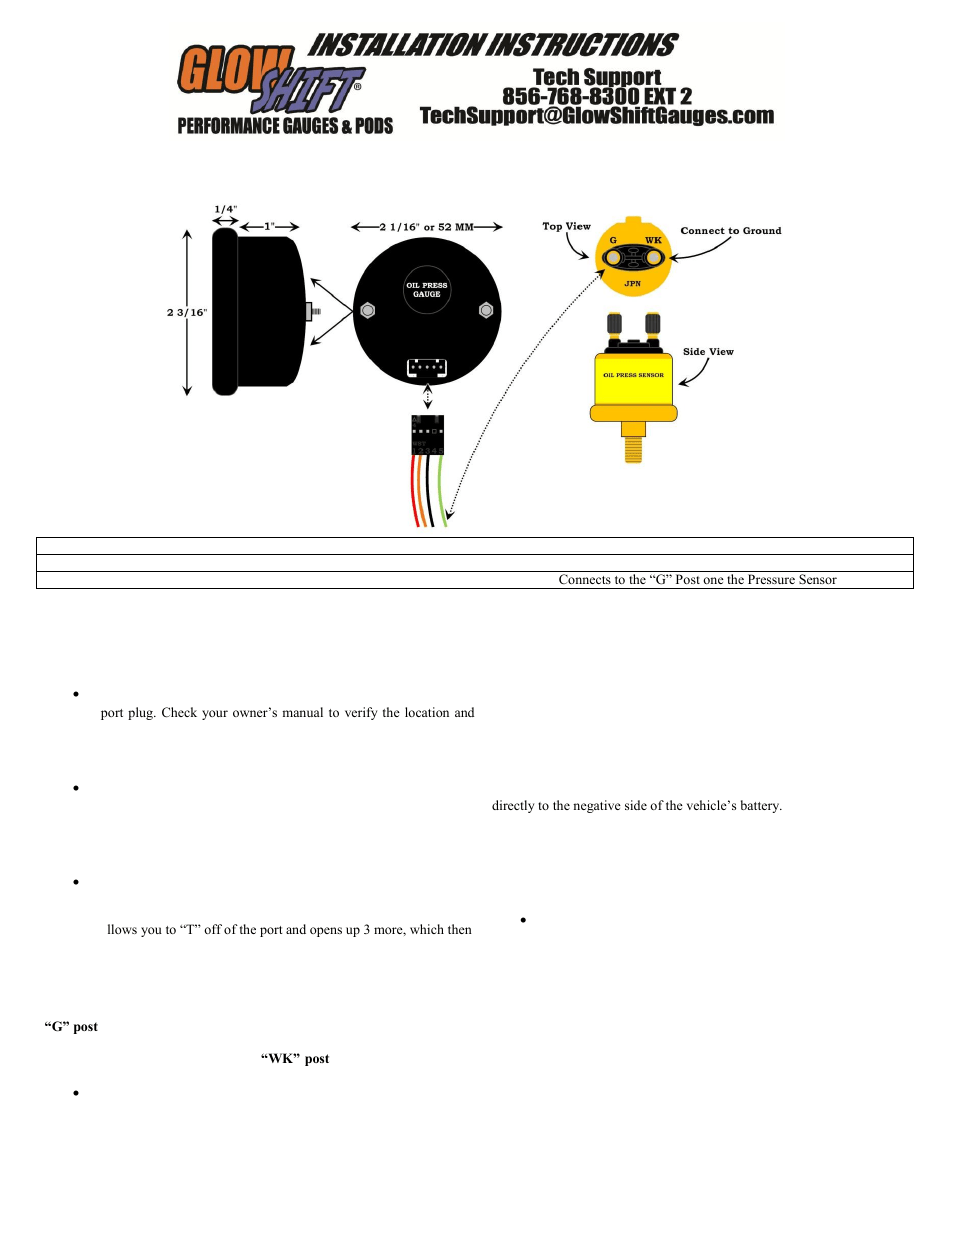 hight resolution of glowshift digital series bar oil pressure gauge user manual 3 pages also for